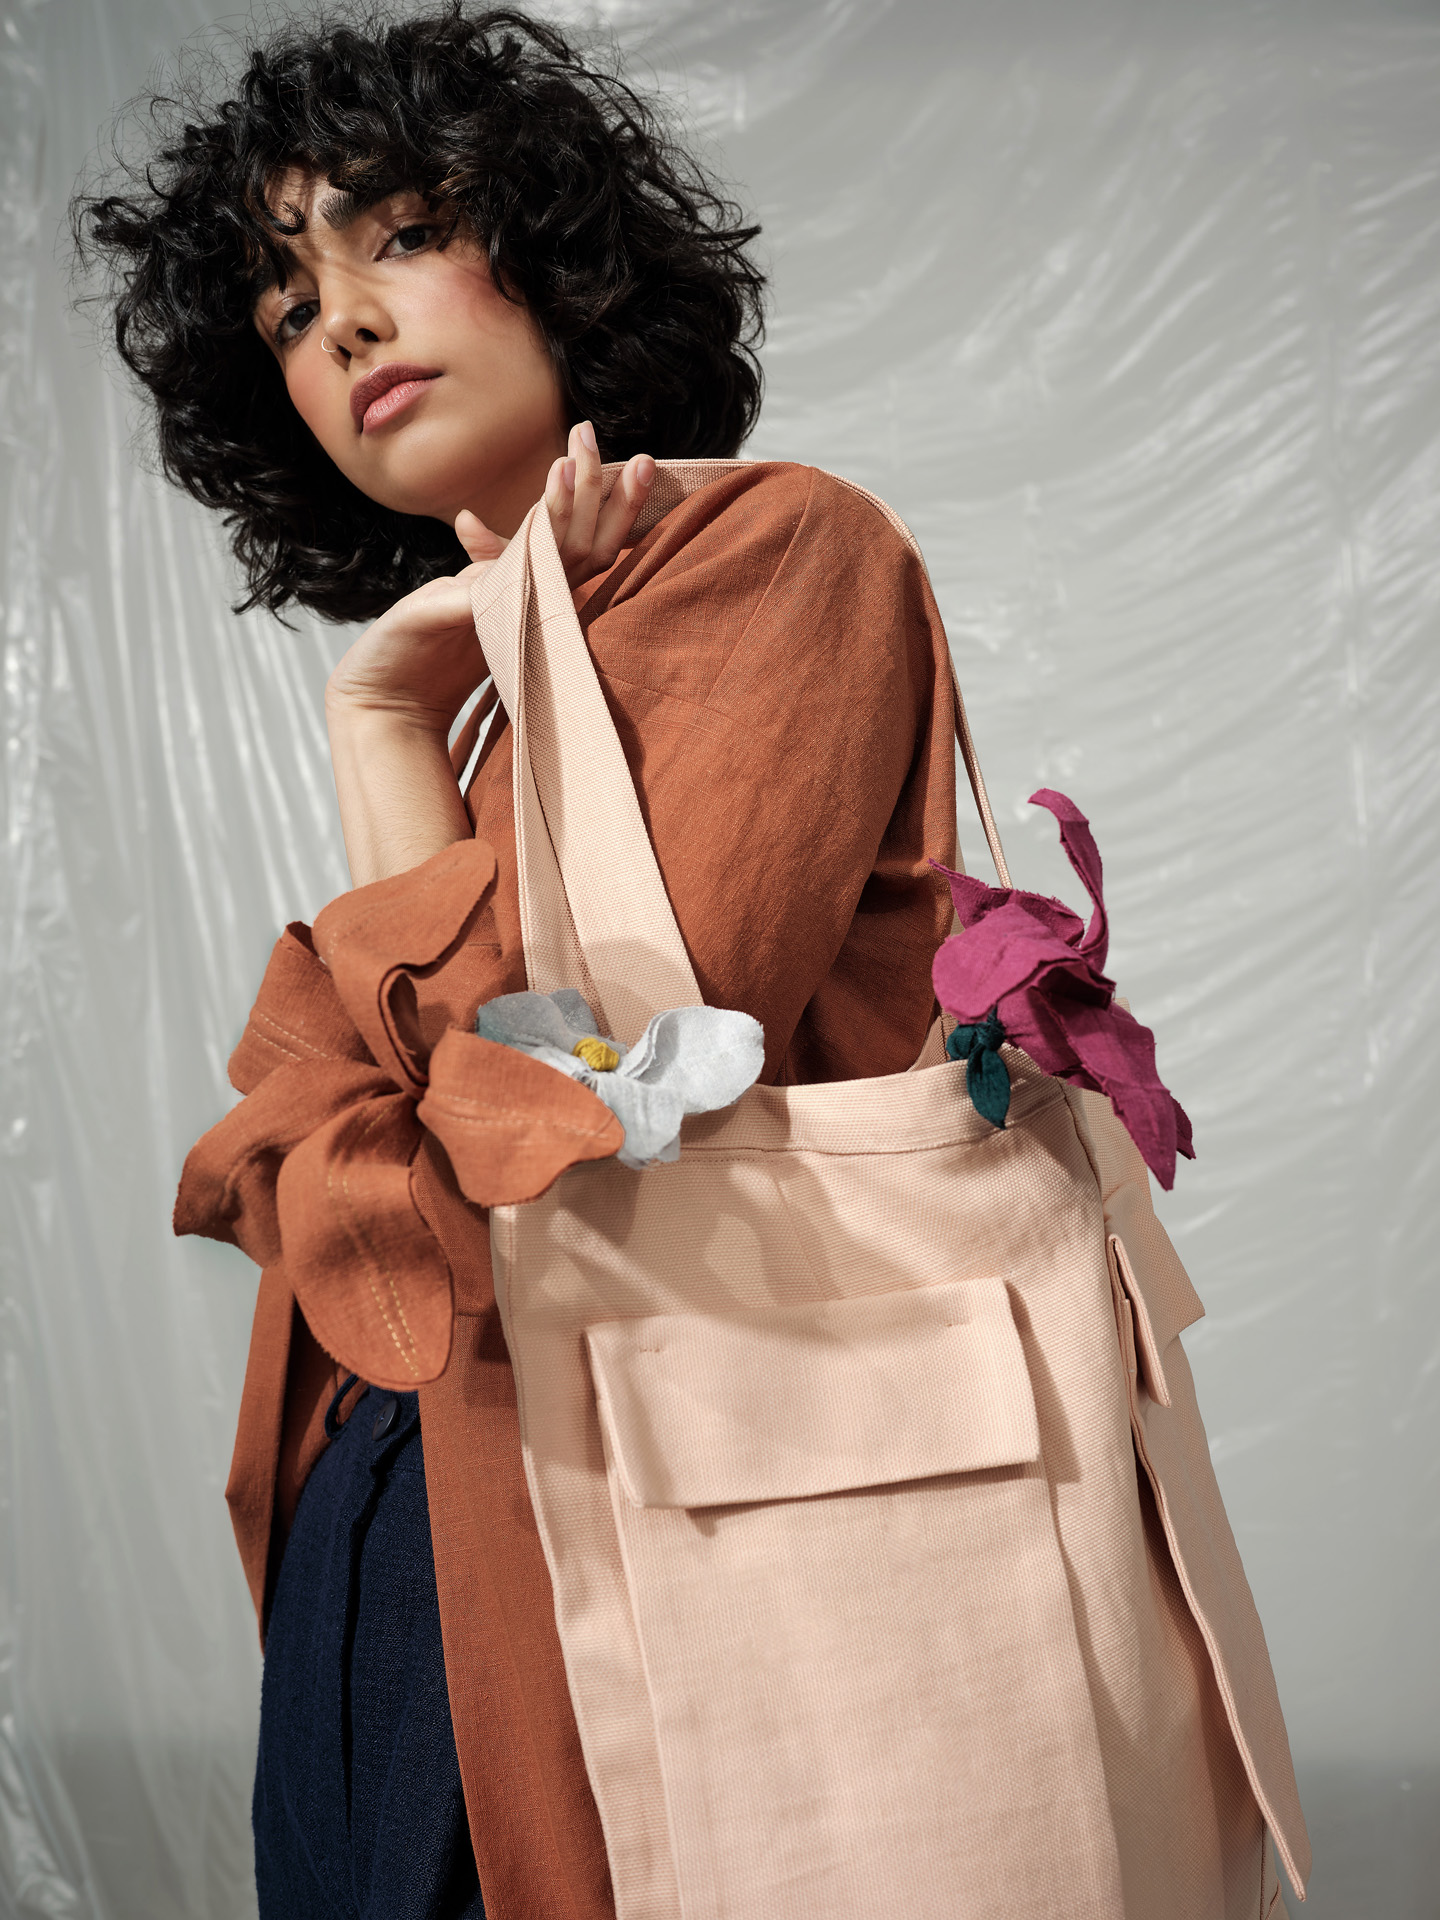 curly haired female model wearing brown jacket tight white crop top and baggy dark blue pants holding soft pink tote bag over her shoulder looking at camera photographed by Maxyme G Delisle with artistic direction and styling by Studio TB